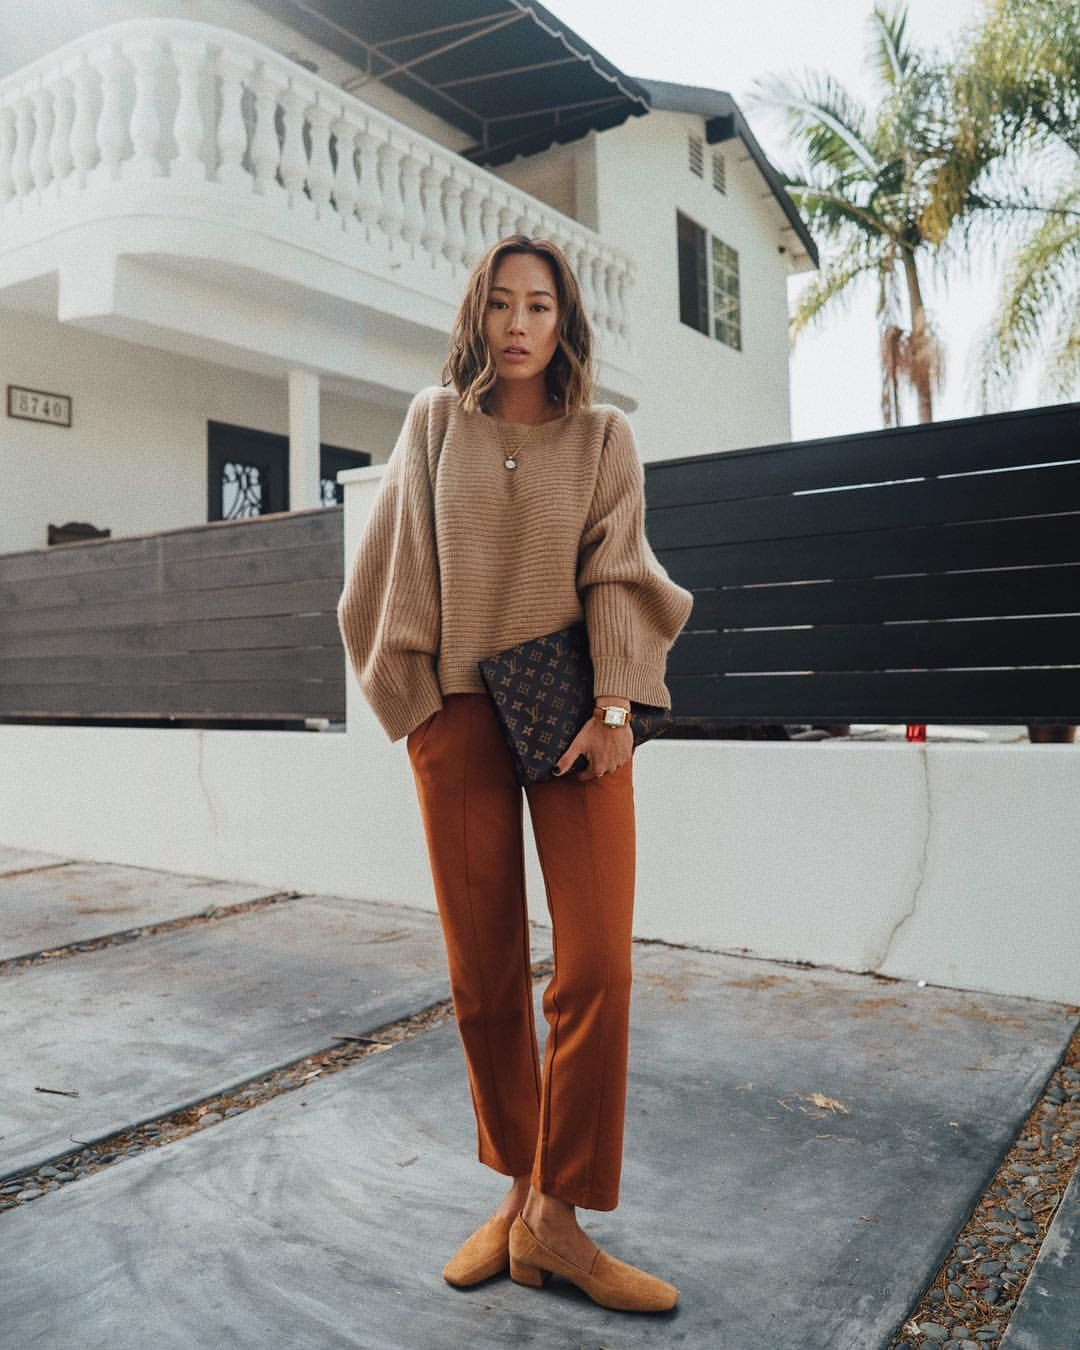 Boxy Camel Sweater+brick red pants+and mustard Suede Pumps+Louis Vuitton  clutch+necklace.